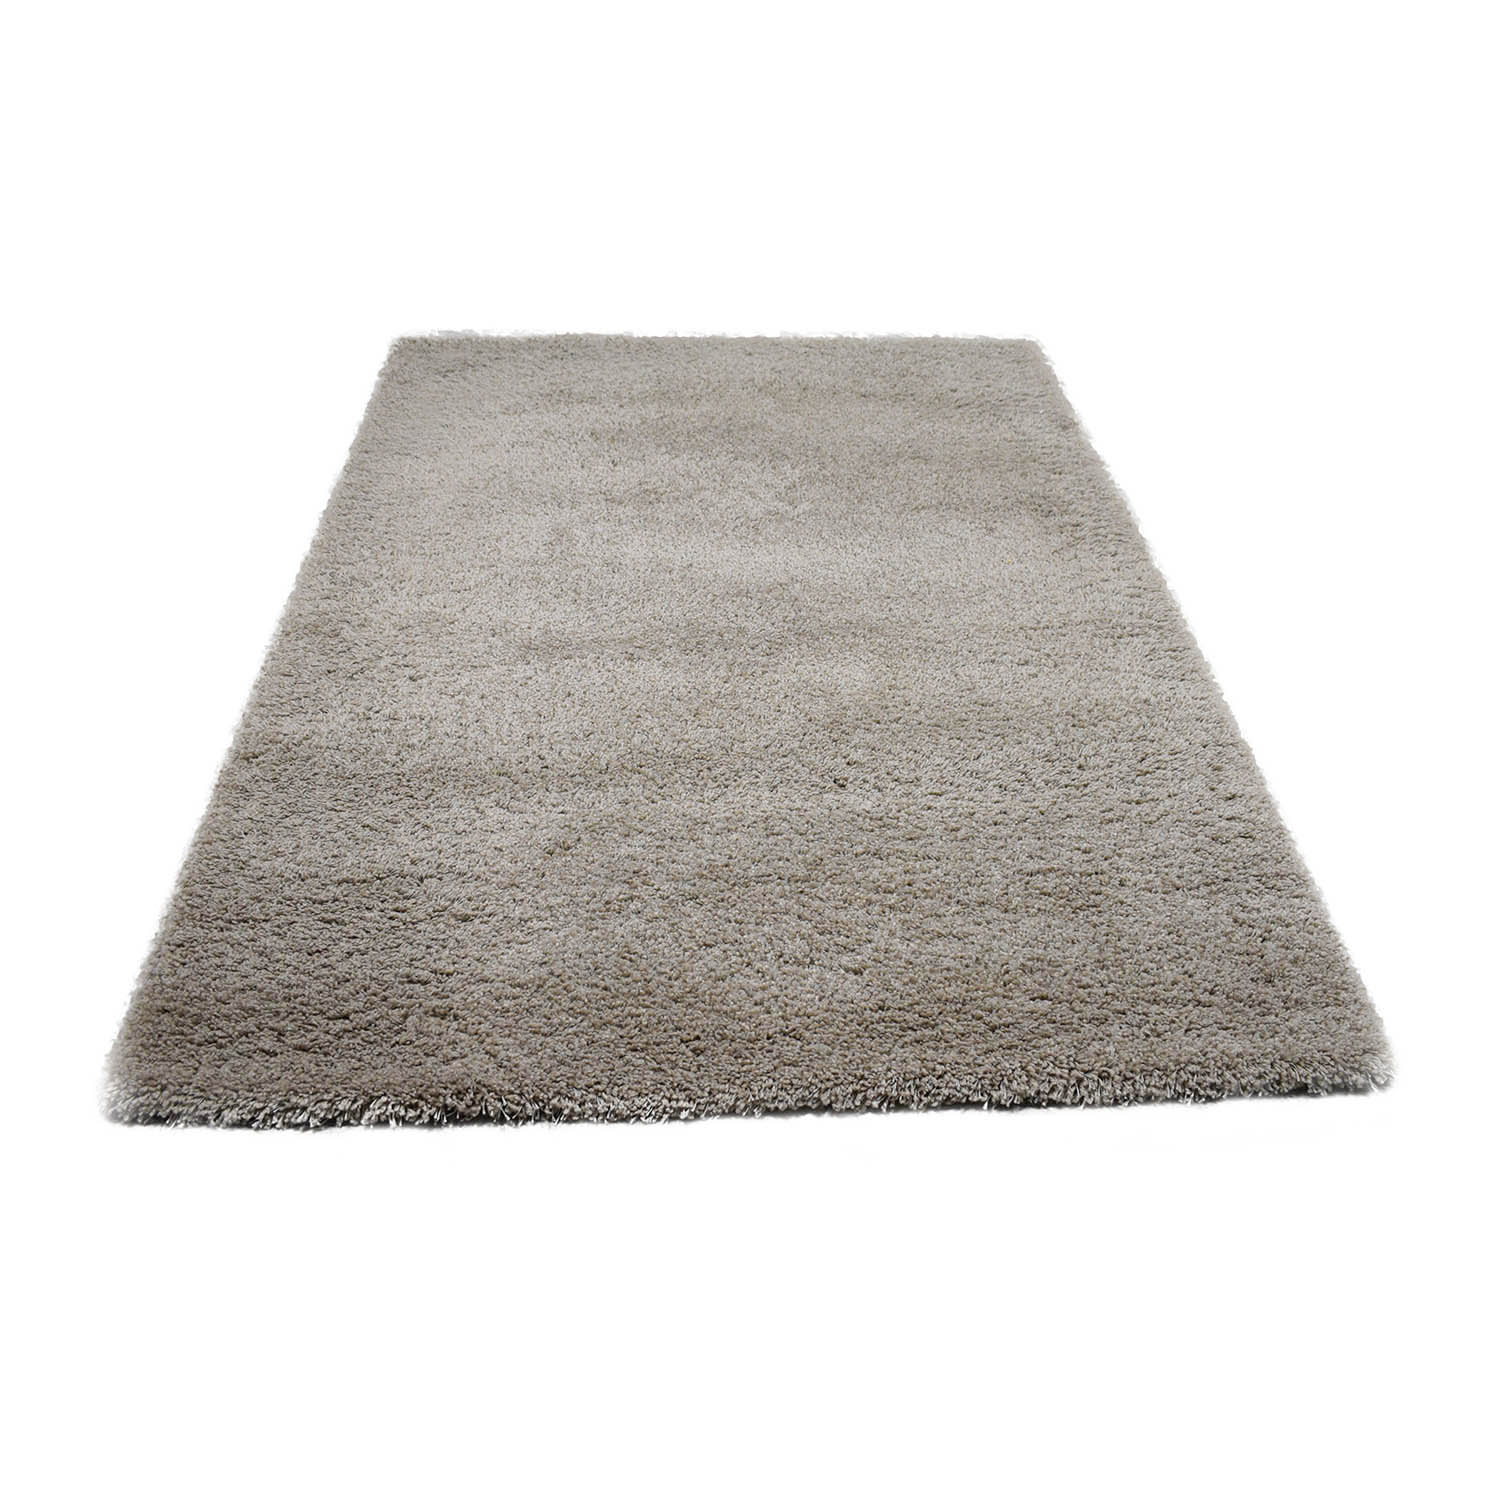 Crate & Barrel Crate & Barrel Grey Shag Rug discount